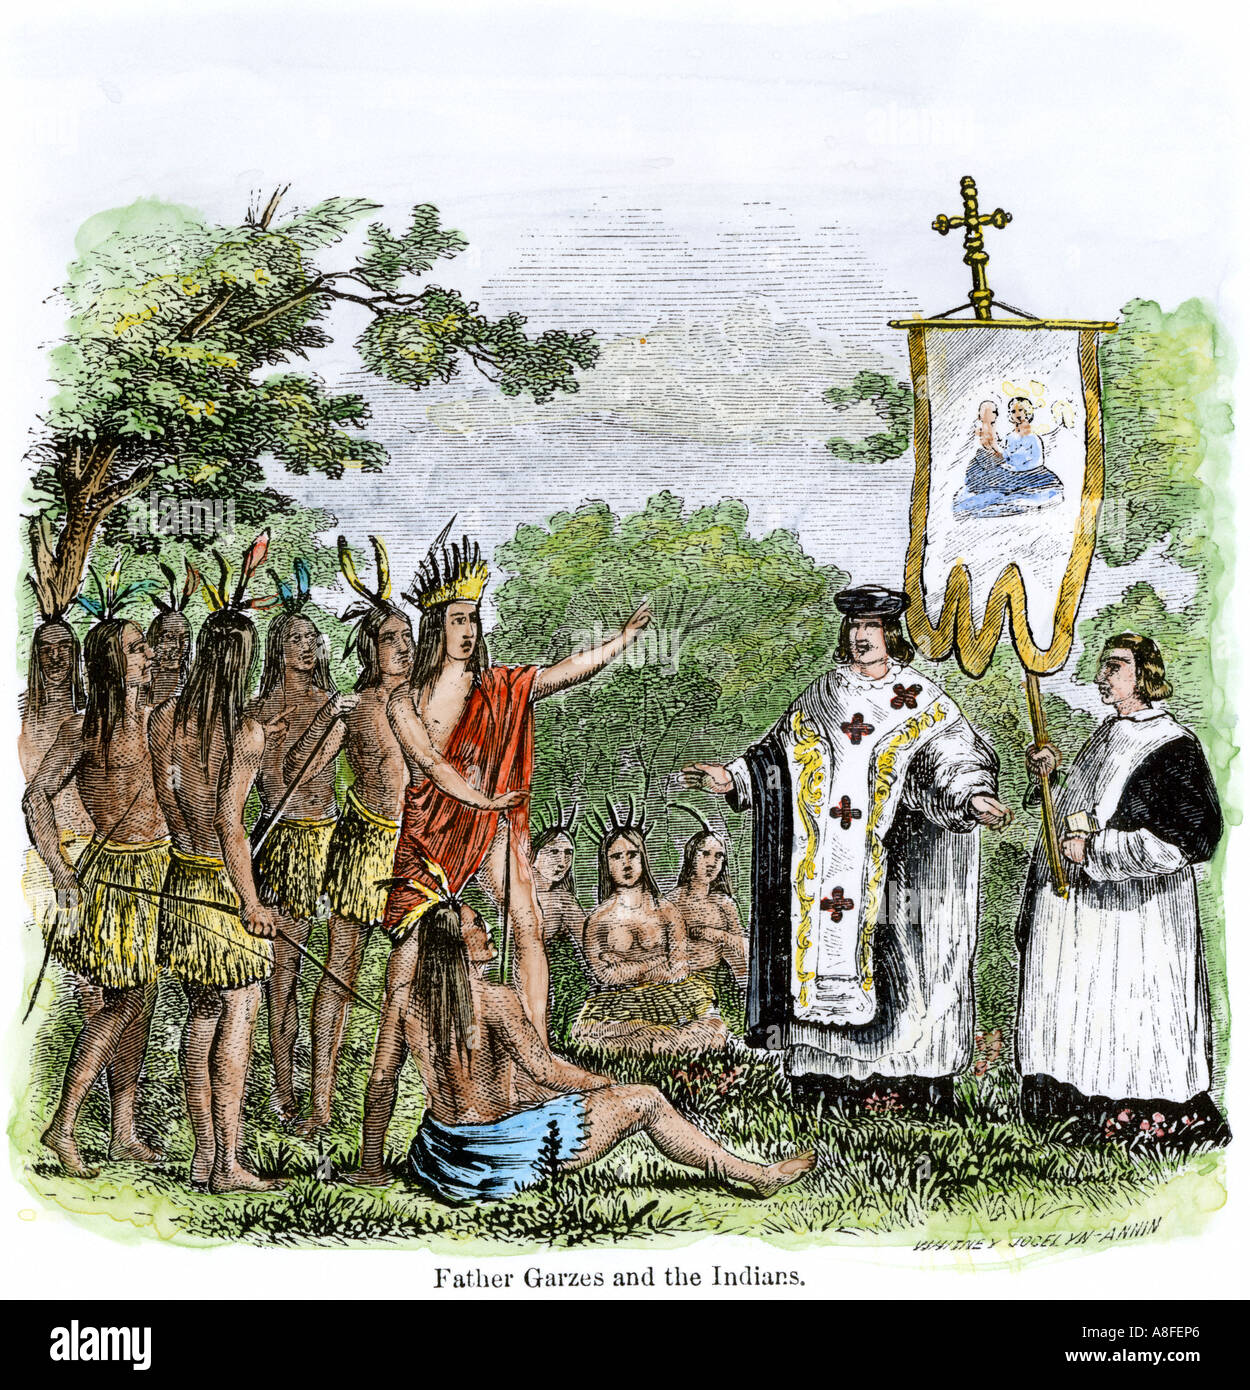 Spanish Missionary Father Garces Teaching Native Americans